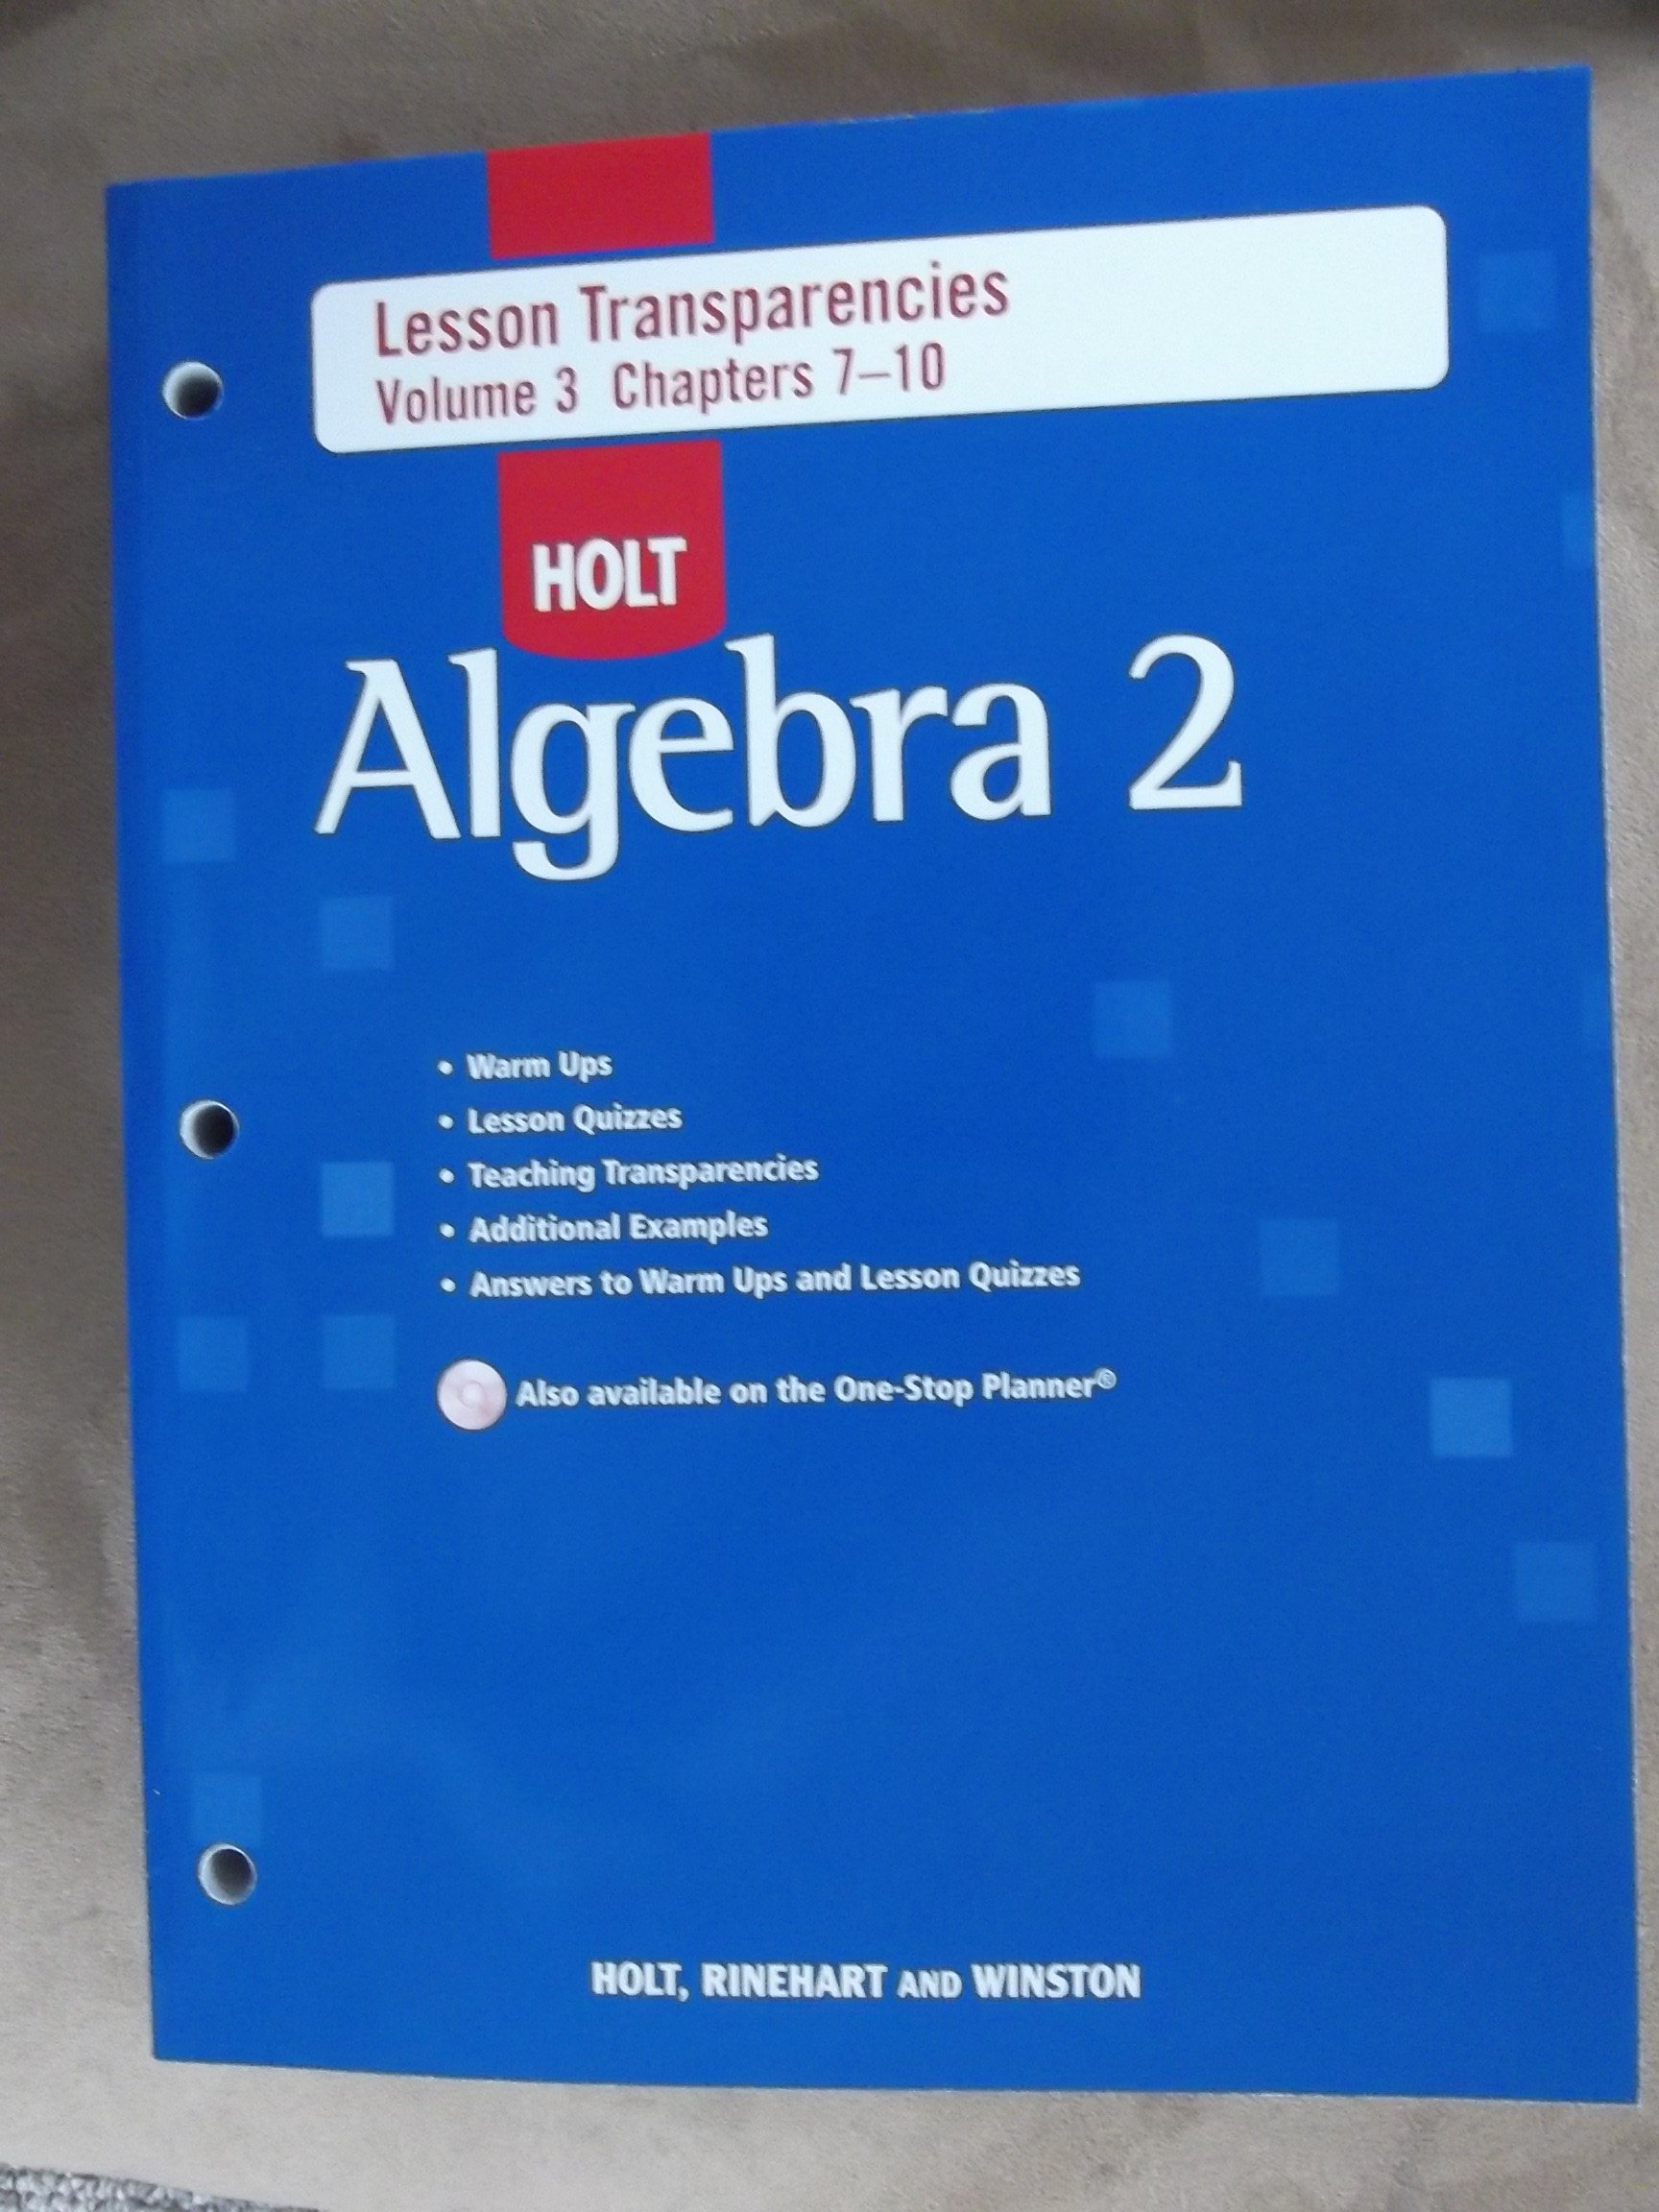 Holt Algebra 2 Lesson Transparencies Volume 3 Chapters 7-10